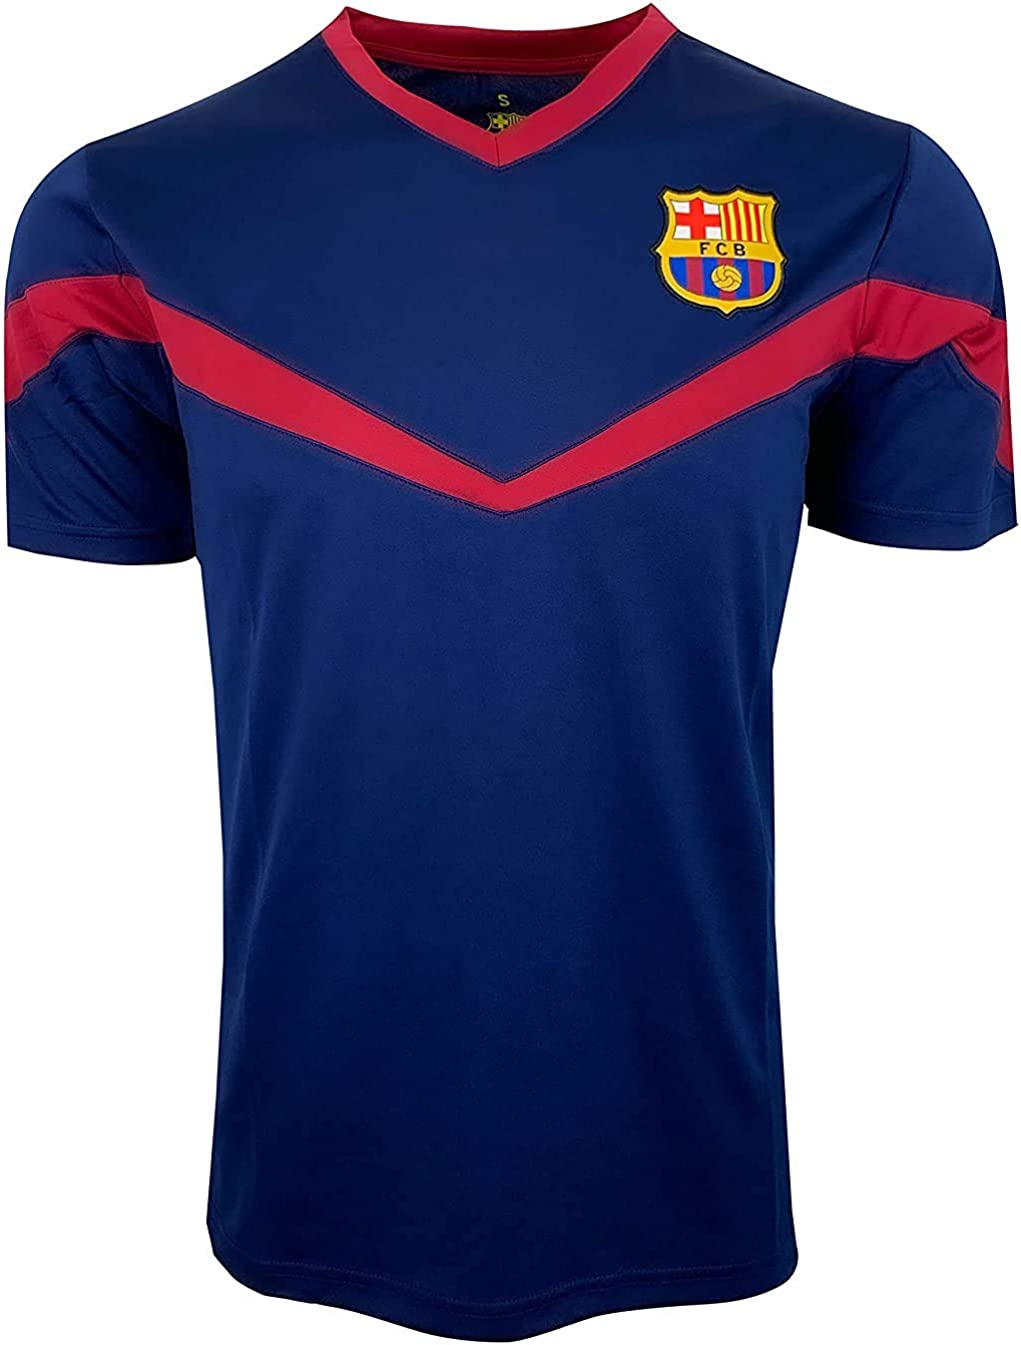 Icon Sports Youth Barcelona Training Jersey, Licensed Barcelona Soccer Shirt for Boys